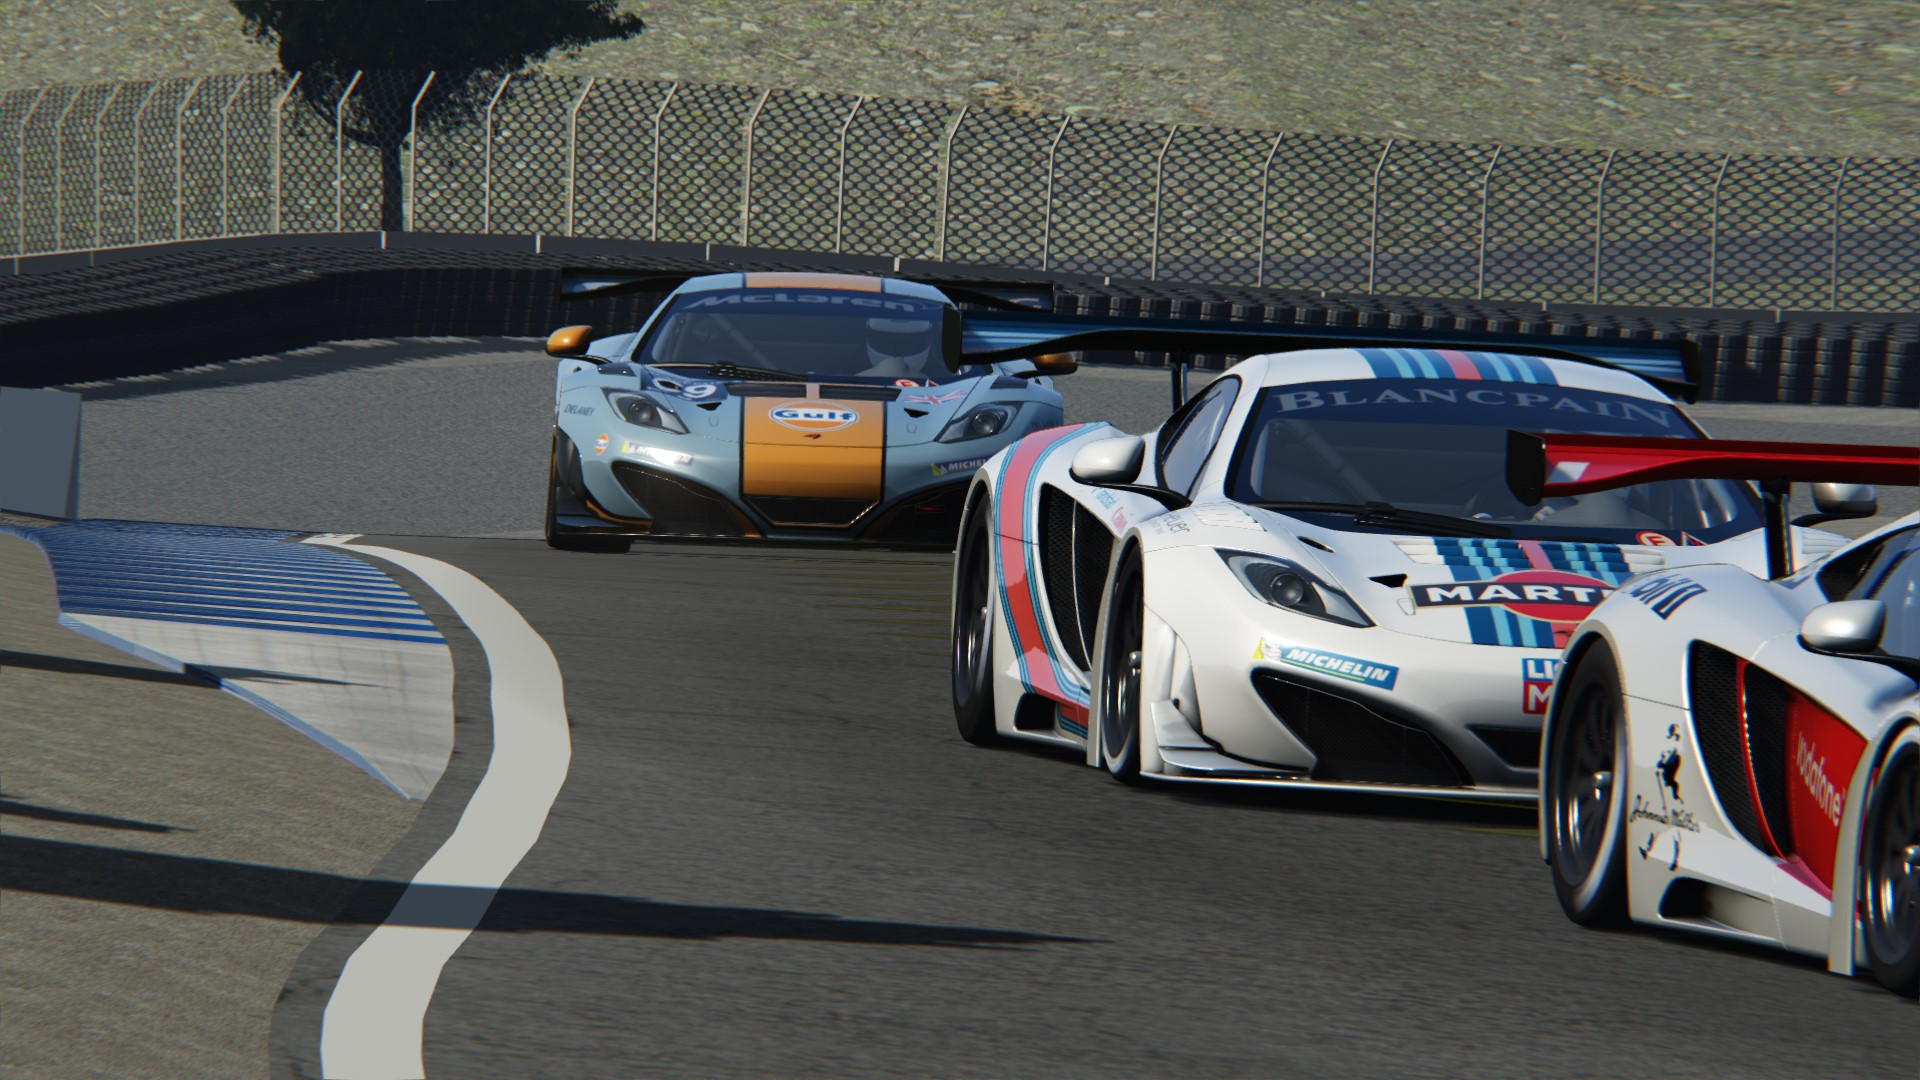 Screenshot_mclaren_mp412c_gt3_bs_lagunaseca_29-5-116-16-47-32.jpg